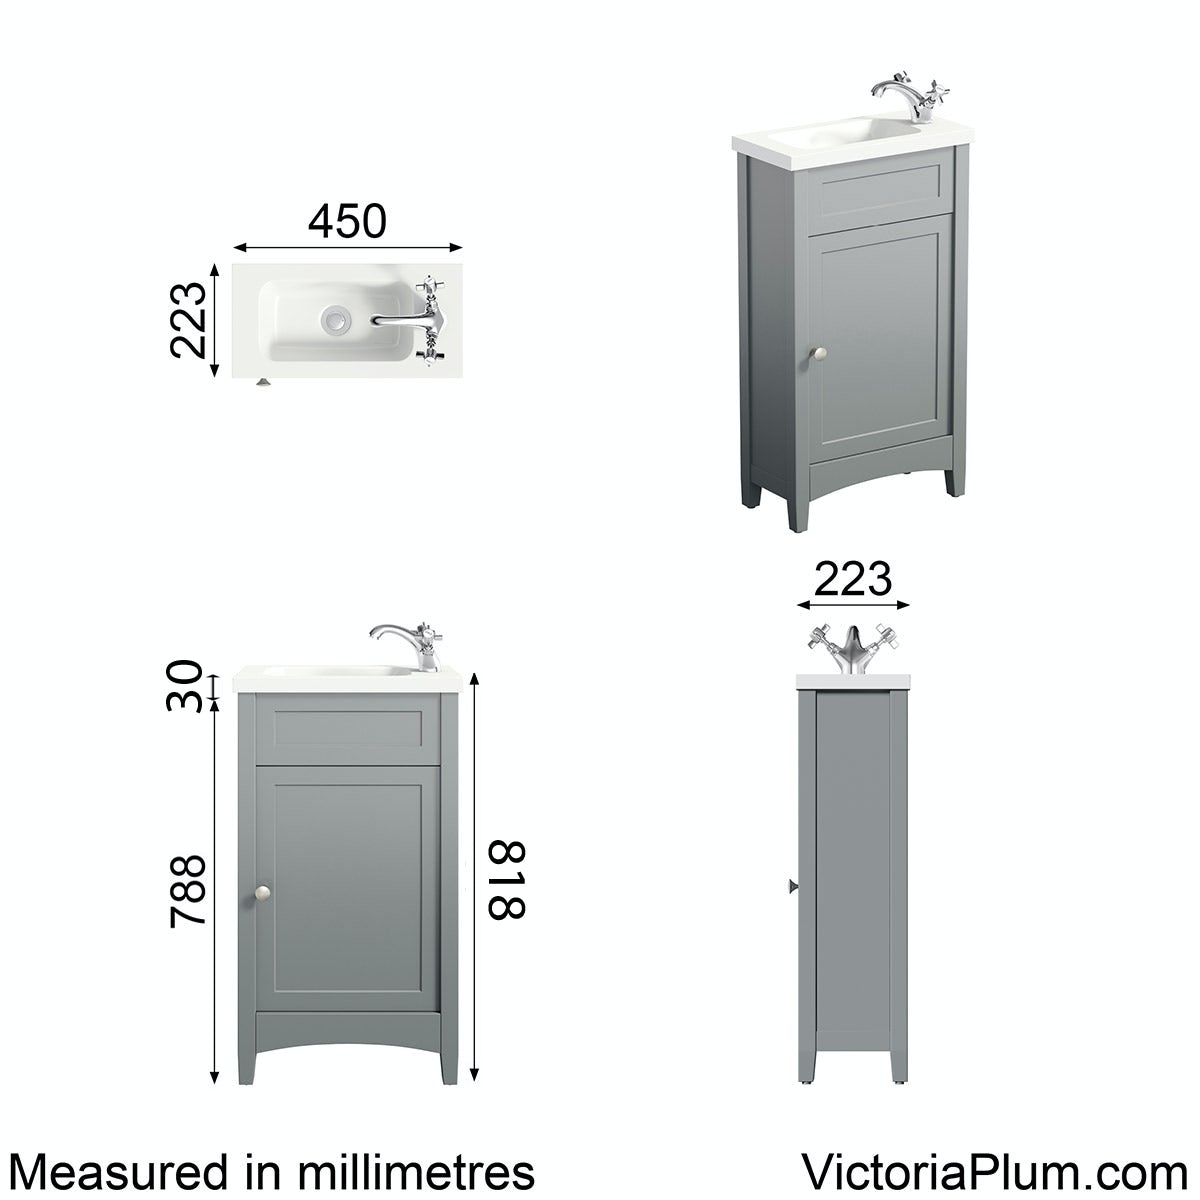 Dimensions for The Bath Co. Camberley grey cloakroom vanity with resin basin